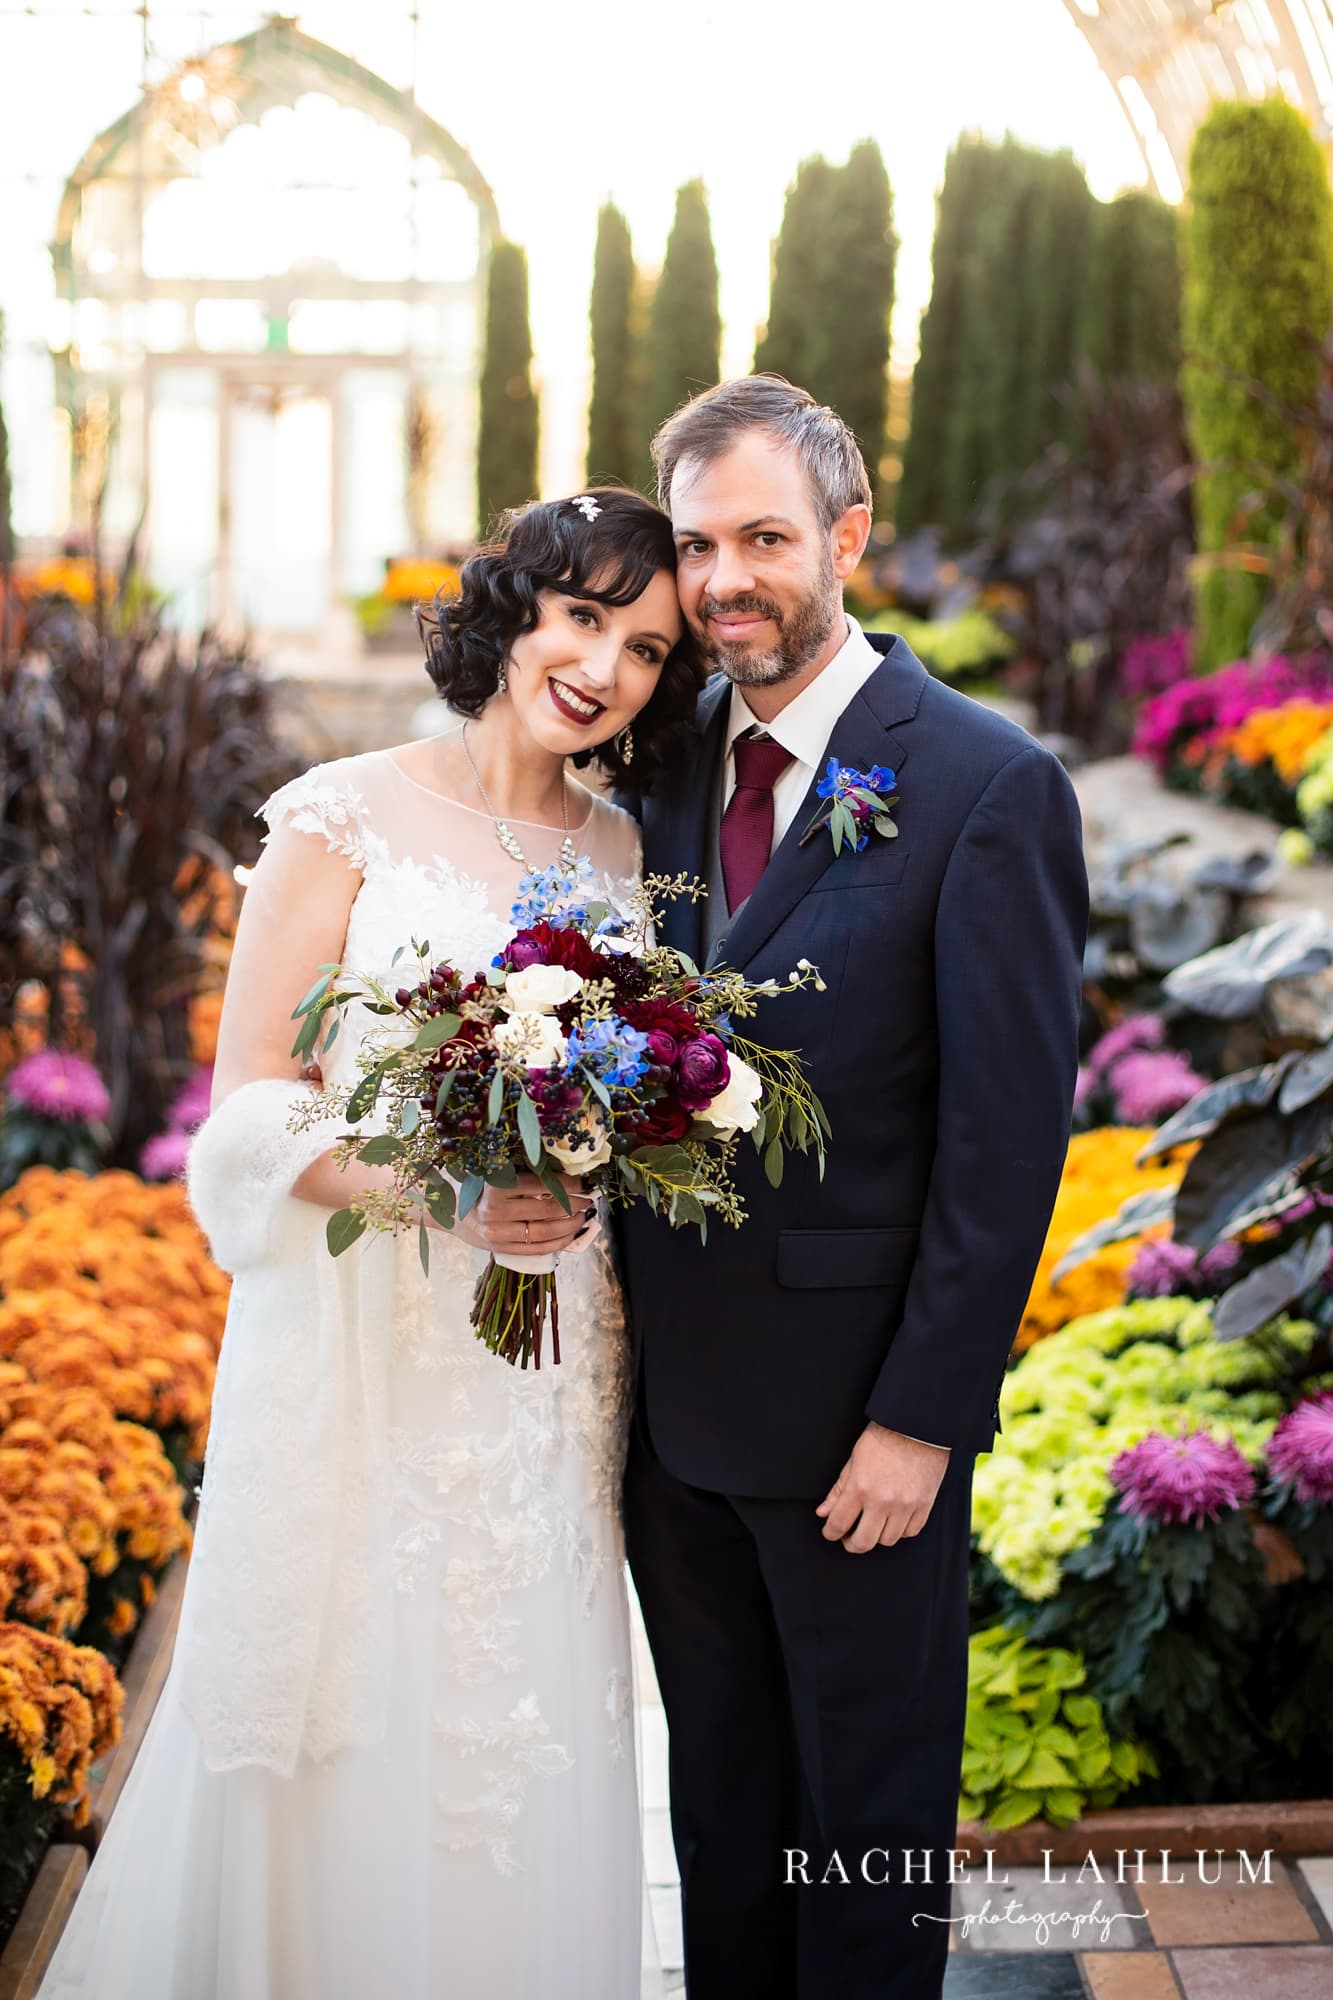 Portrait of bride and groom at Como Conservatory in Saint Paul, Minnesota.